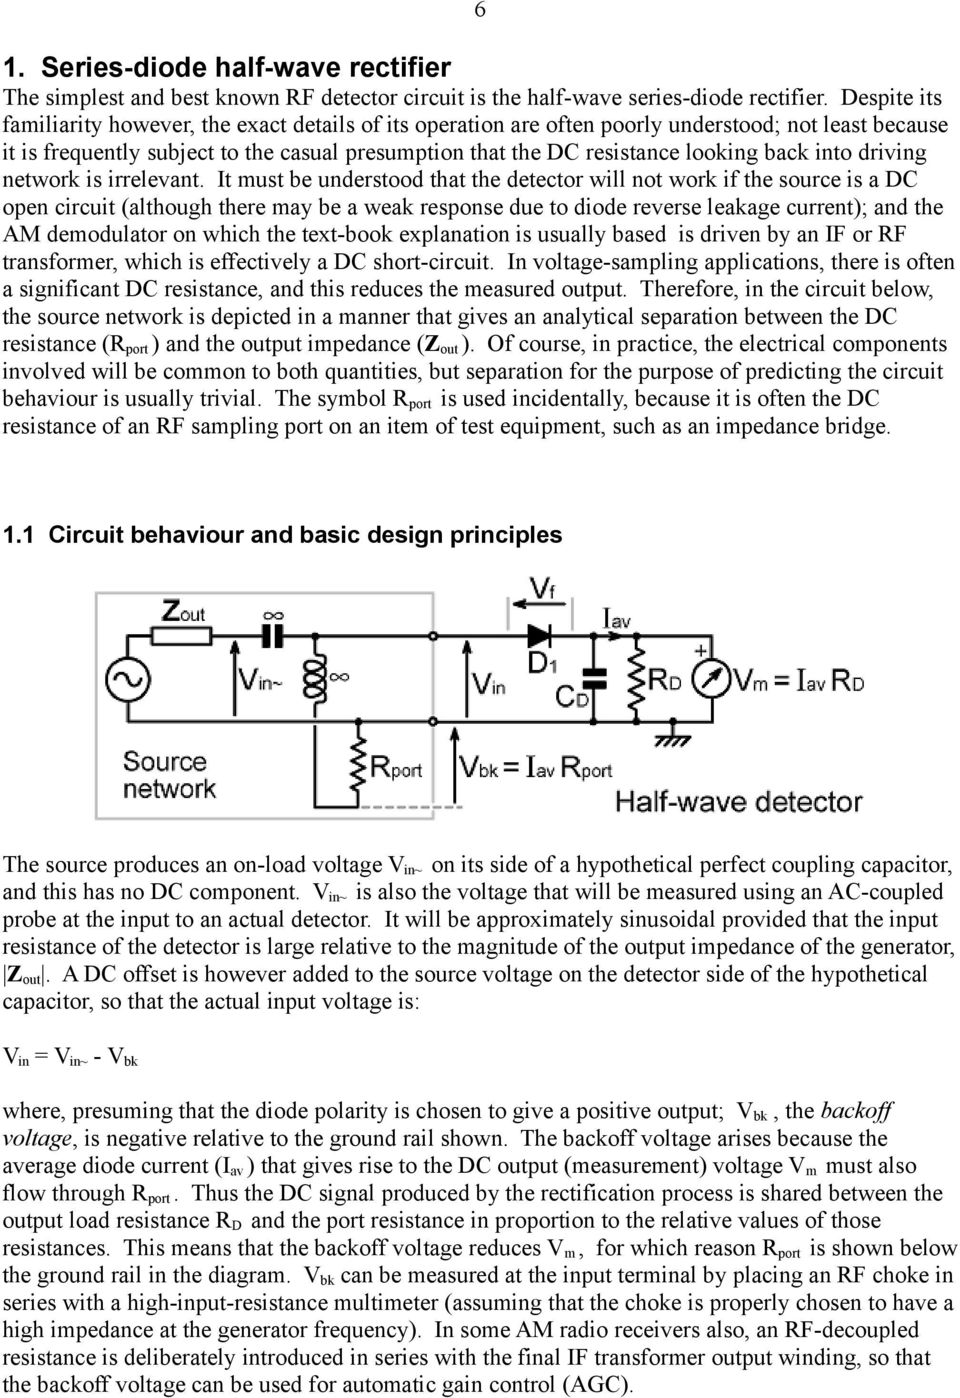 Diode Detectors For Rf Measurement Part 1 Rectifier Circuits Simple Envelope Detector Circuit Is Shown In The Back Into Driving Network Irrelevant